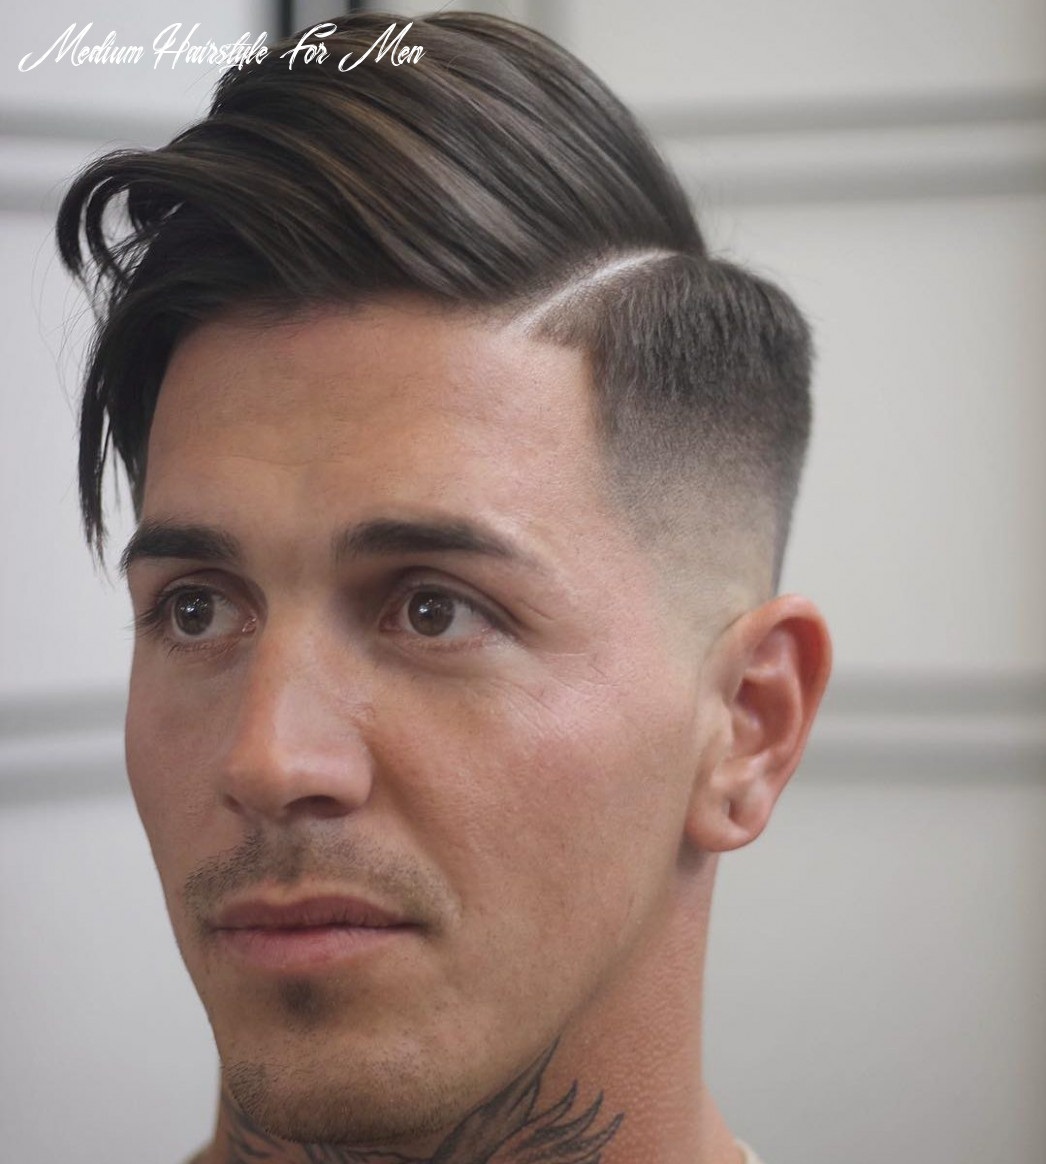 12 medium hairstyles for men (cool 12 styles) medium hairstyle for men